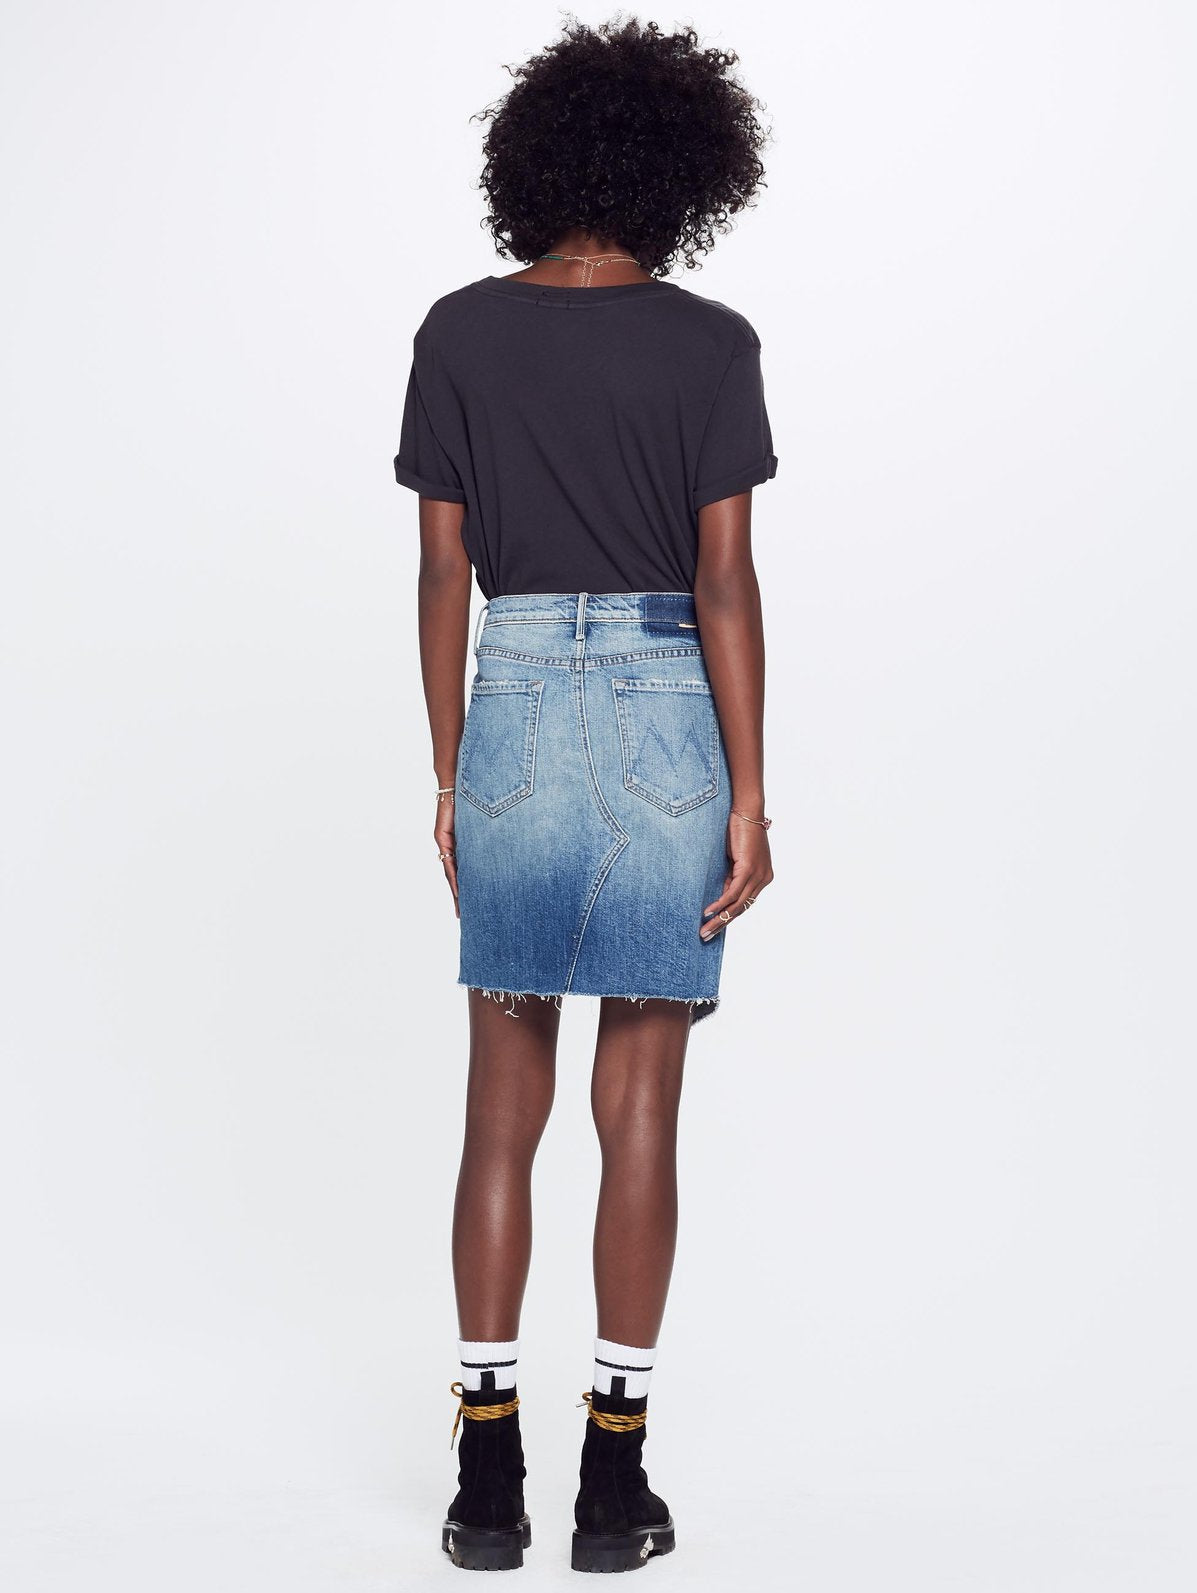 c86b5bed38 You may also like. Vagabond Mini Skirt - Natural Born Trouble. Skirt. Mother  Denim